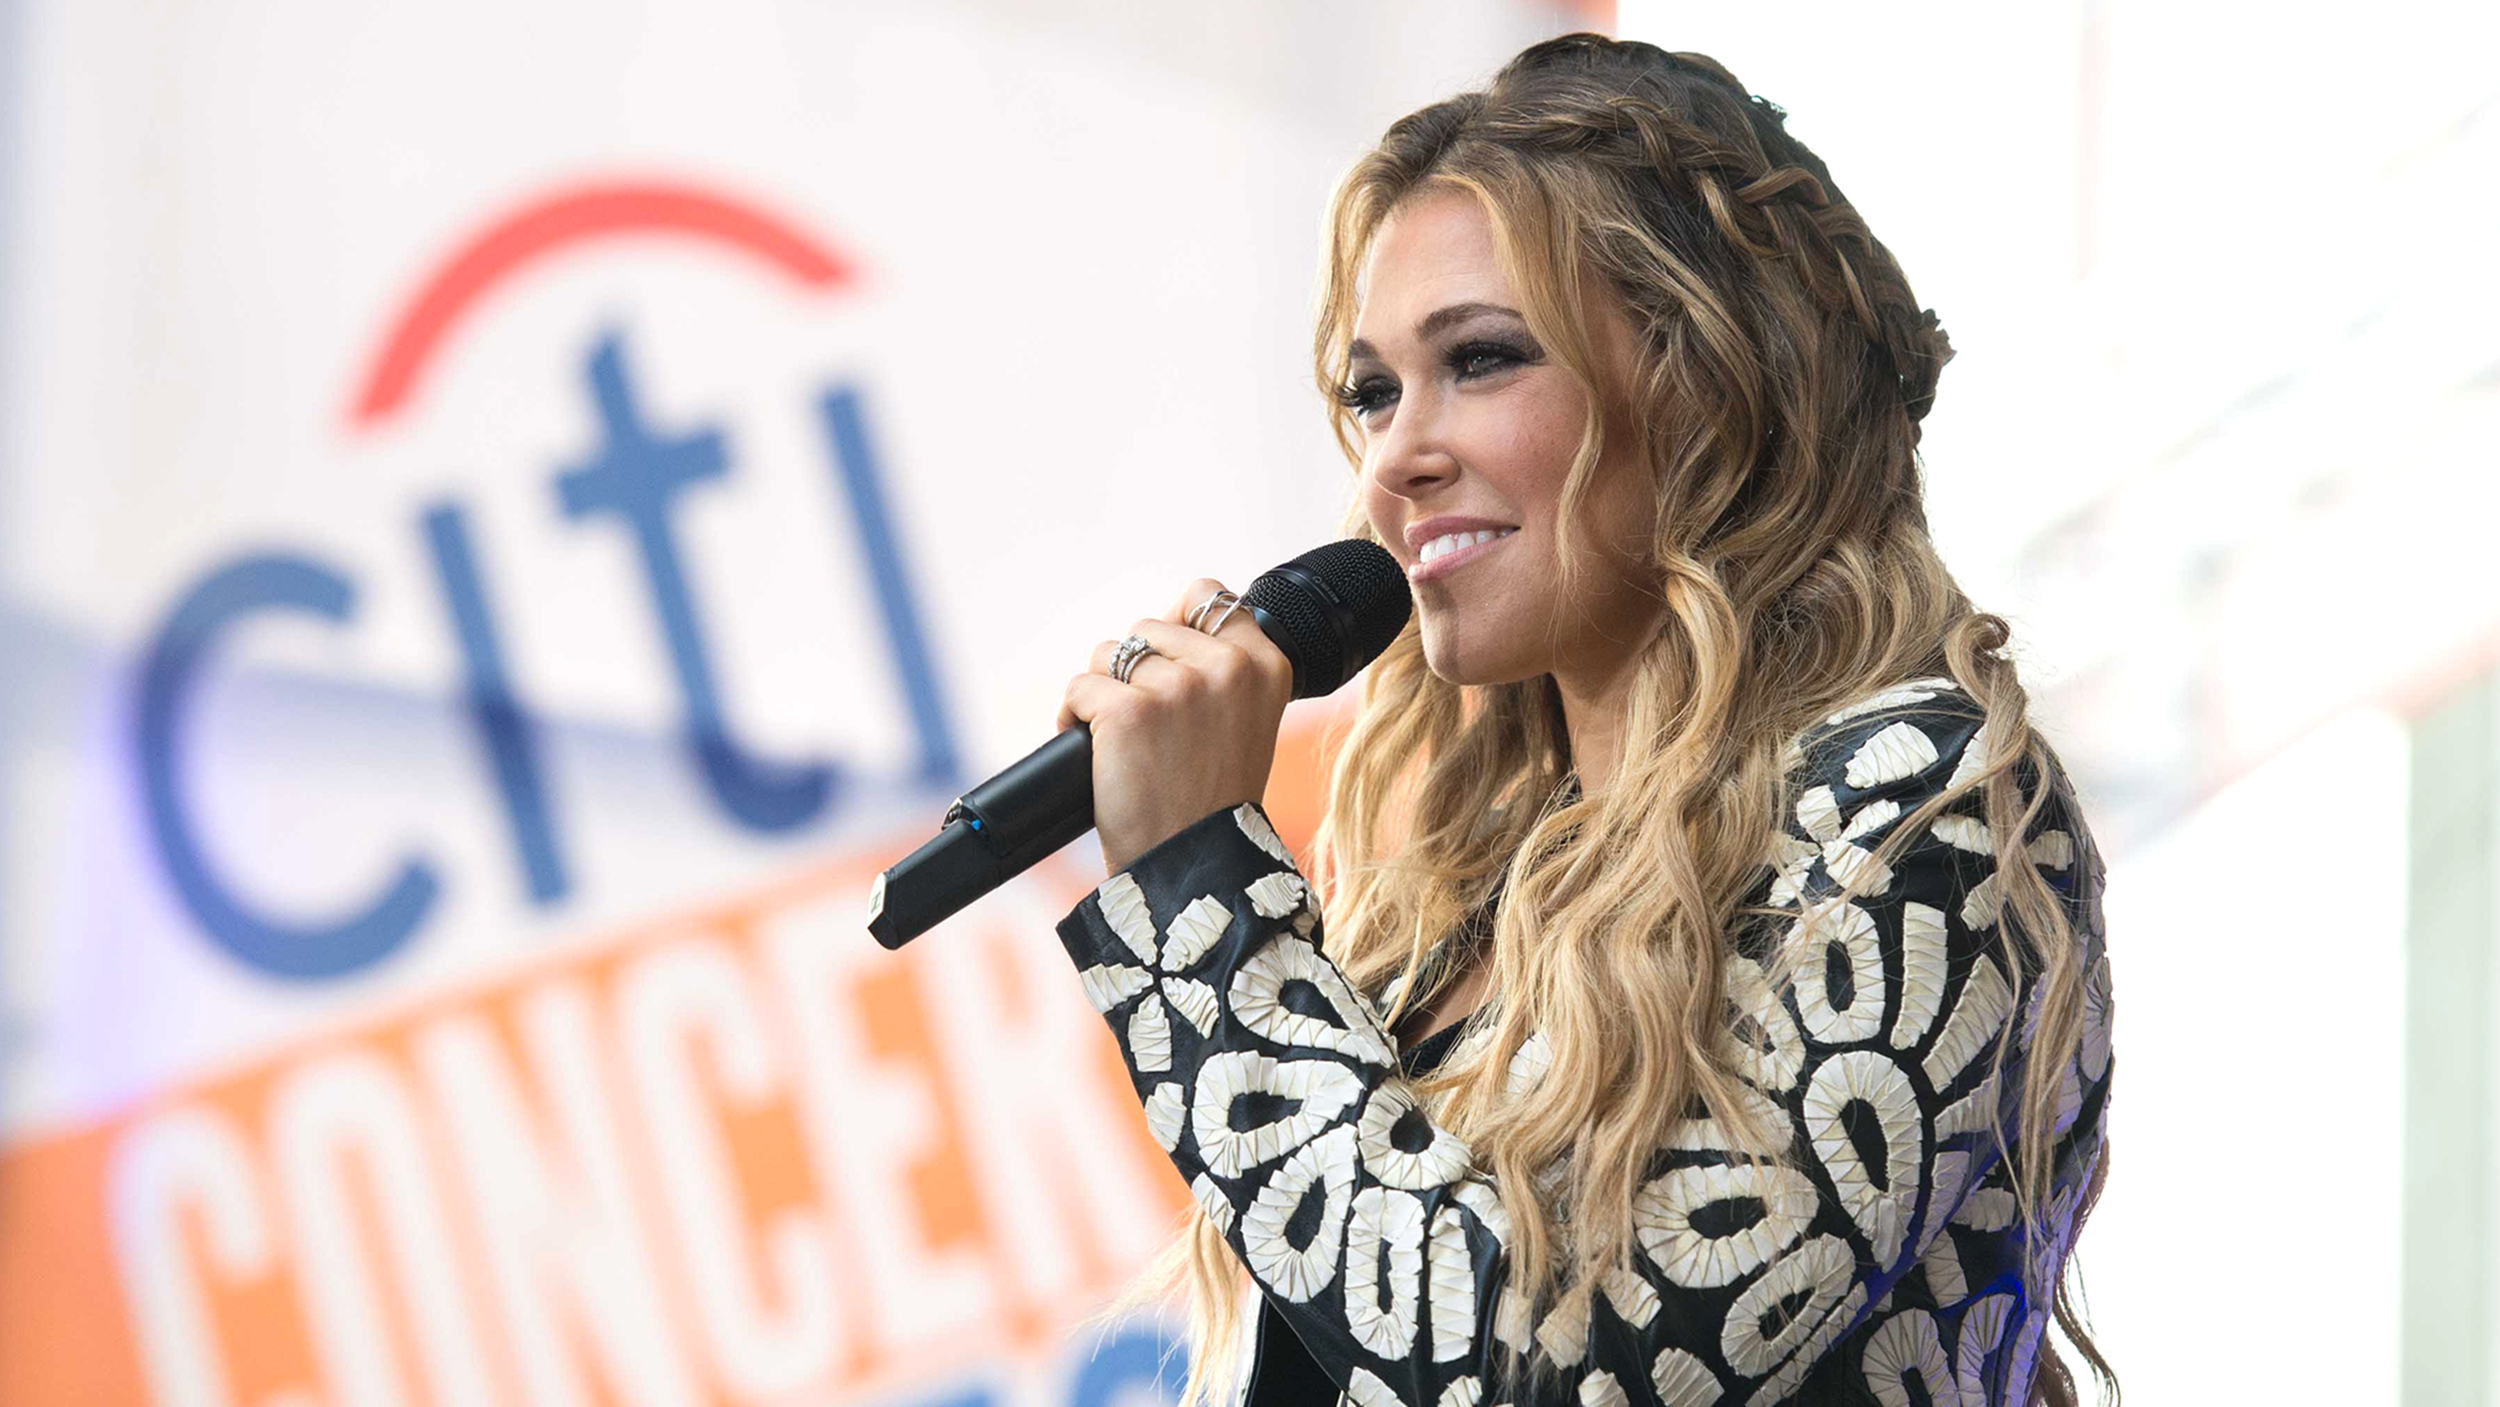 TODAY plaza a 'Better Place' with Rachel Platten kicking off July 4 weekend